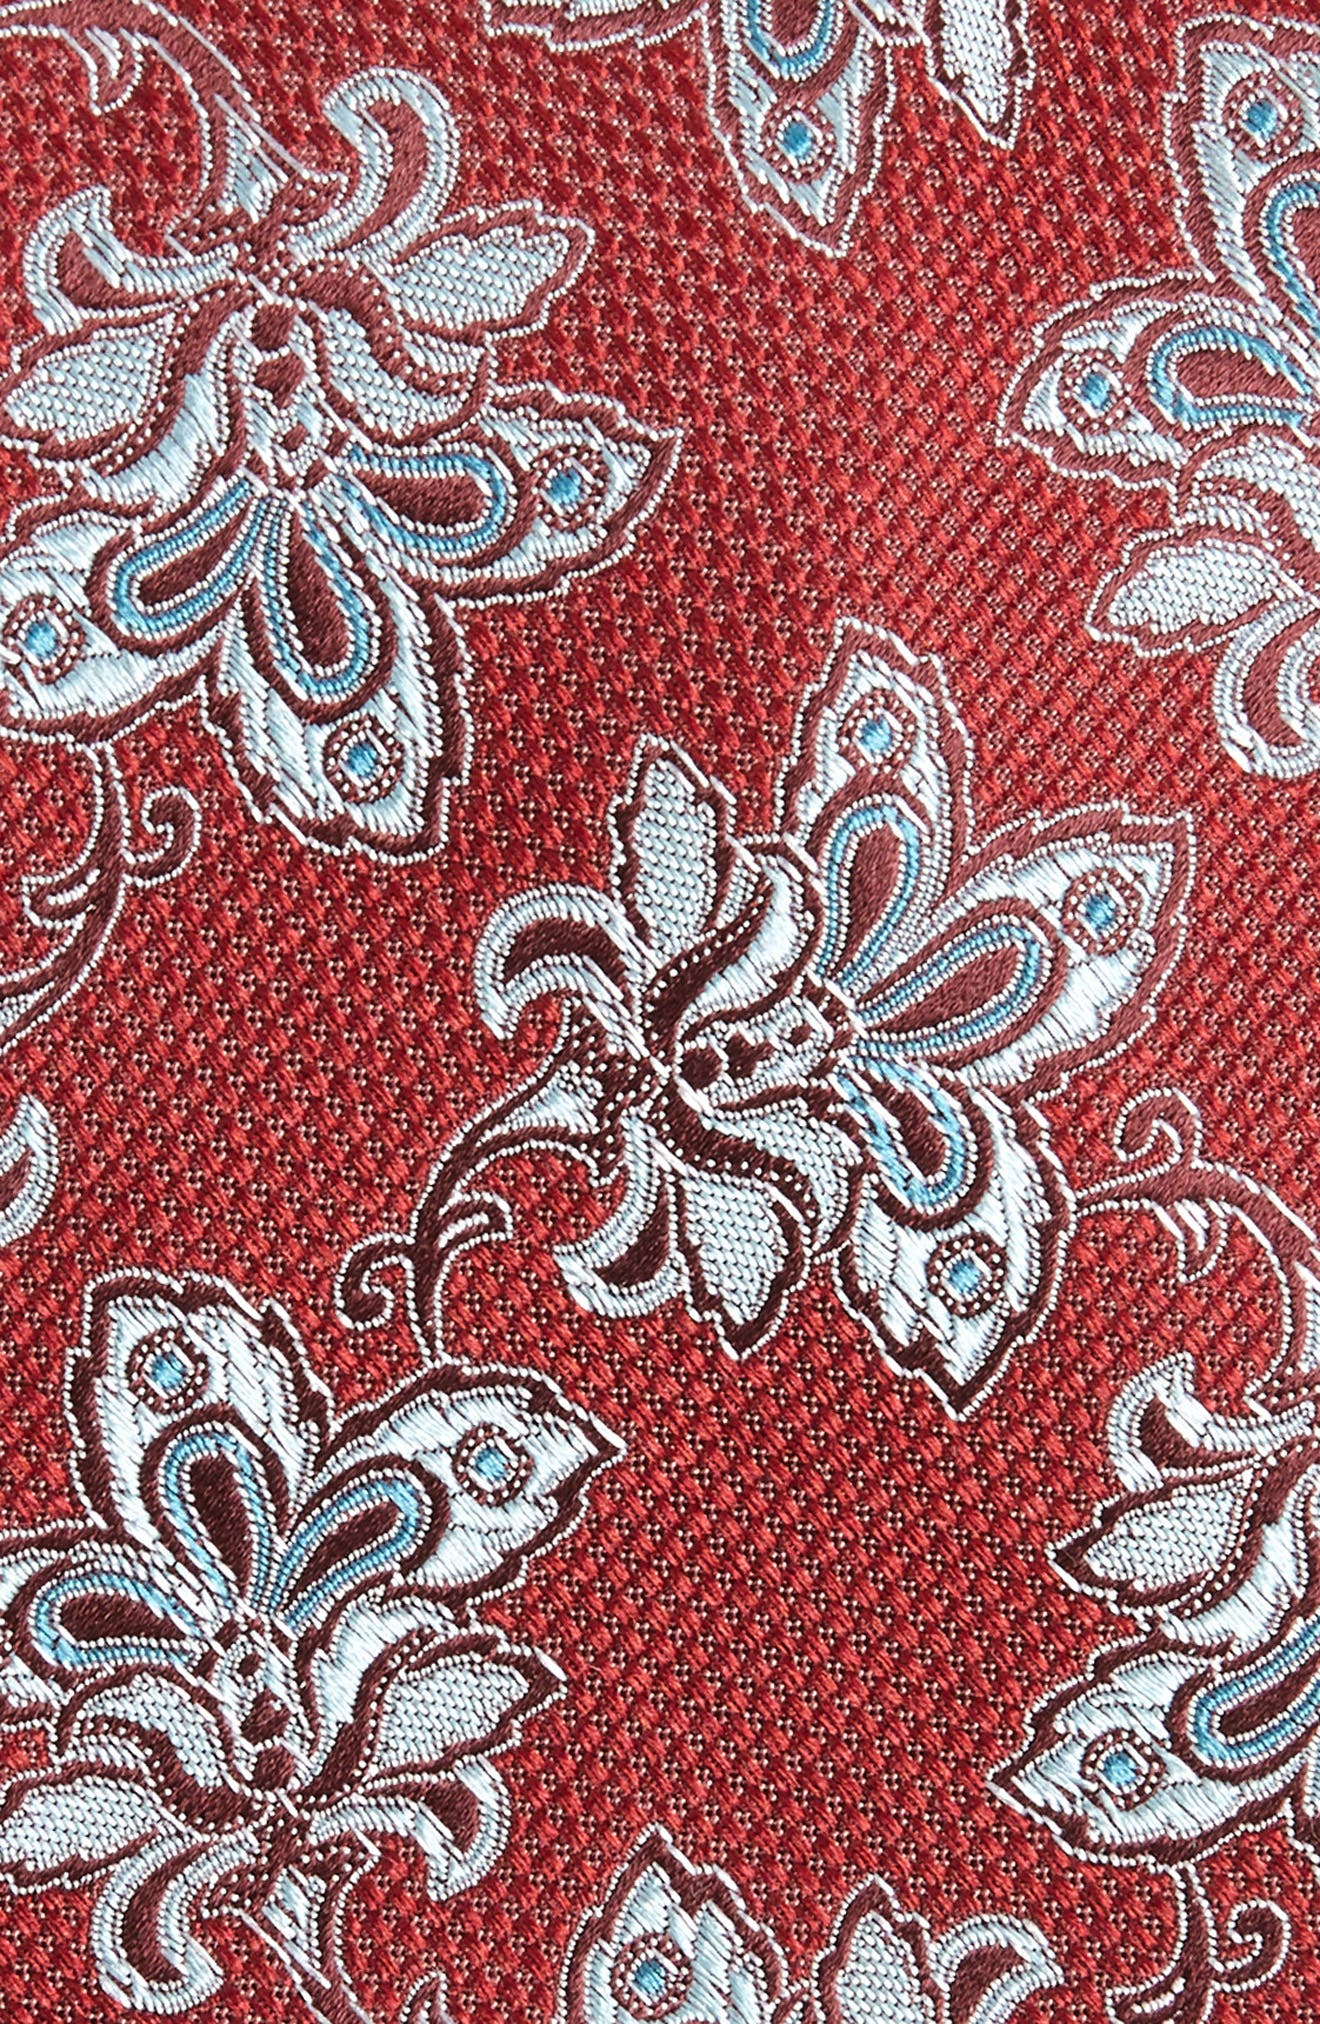 Shaw Floral Silk Tie,                             Alternate thumbnail 2, color,                             Red